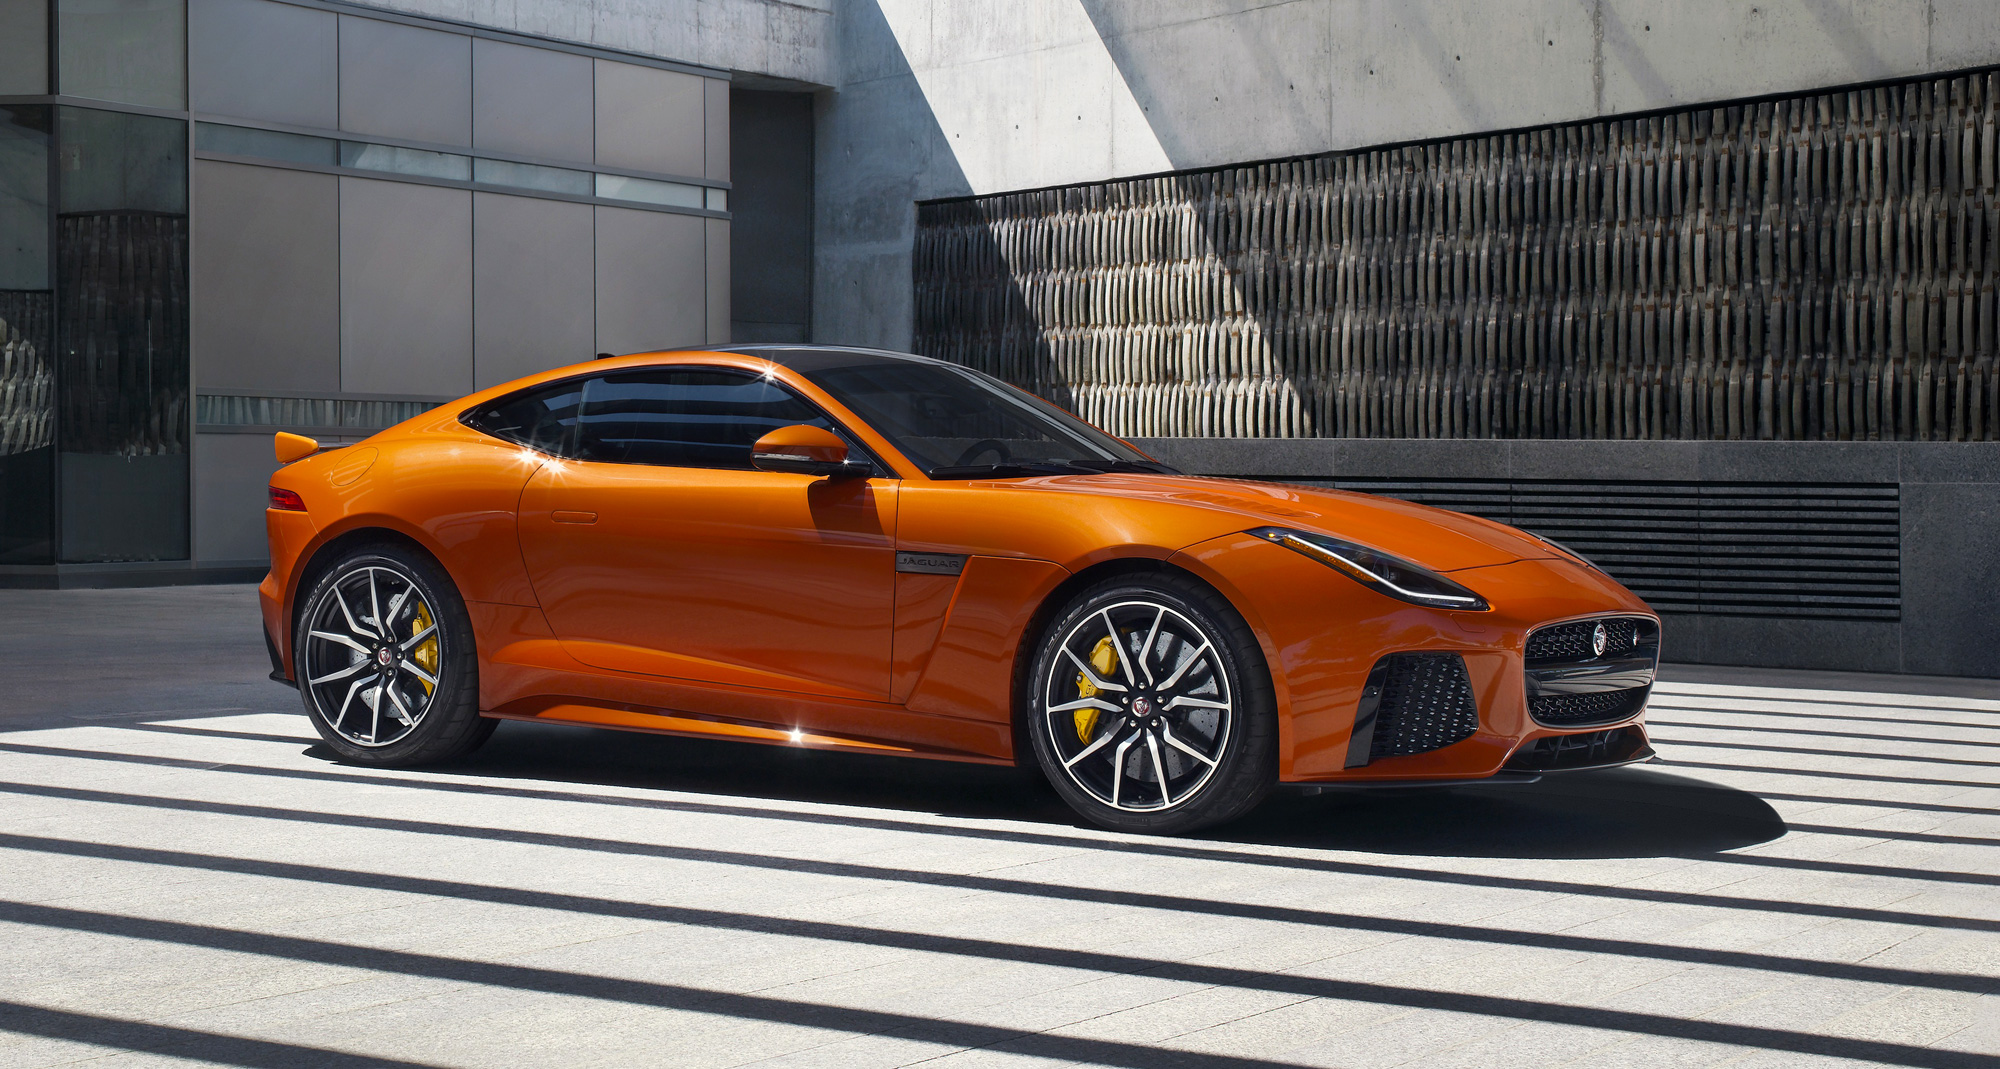 Range Rover Sport 2016 >> The F-Type SVR – Jaguar's All-Weather Supercar - Luxurious Magazine